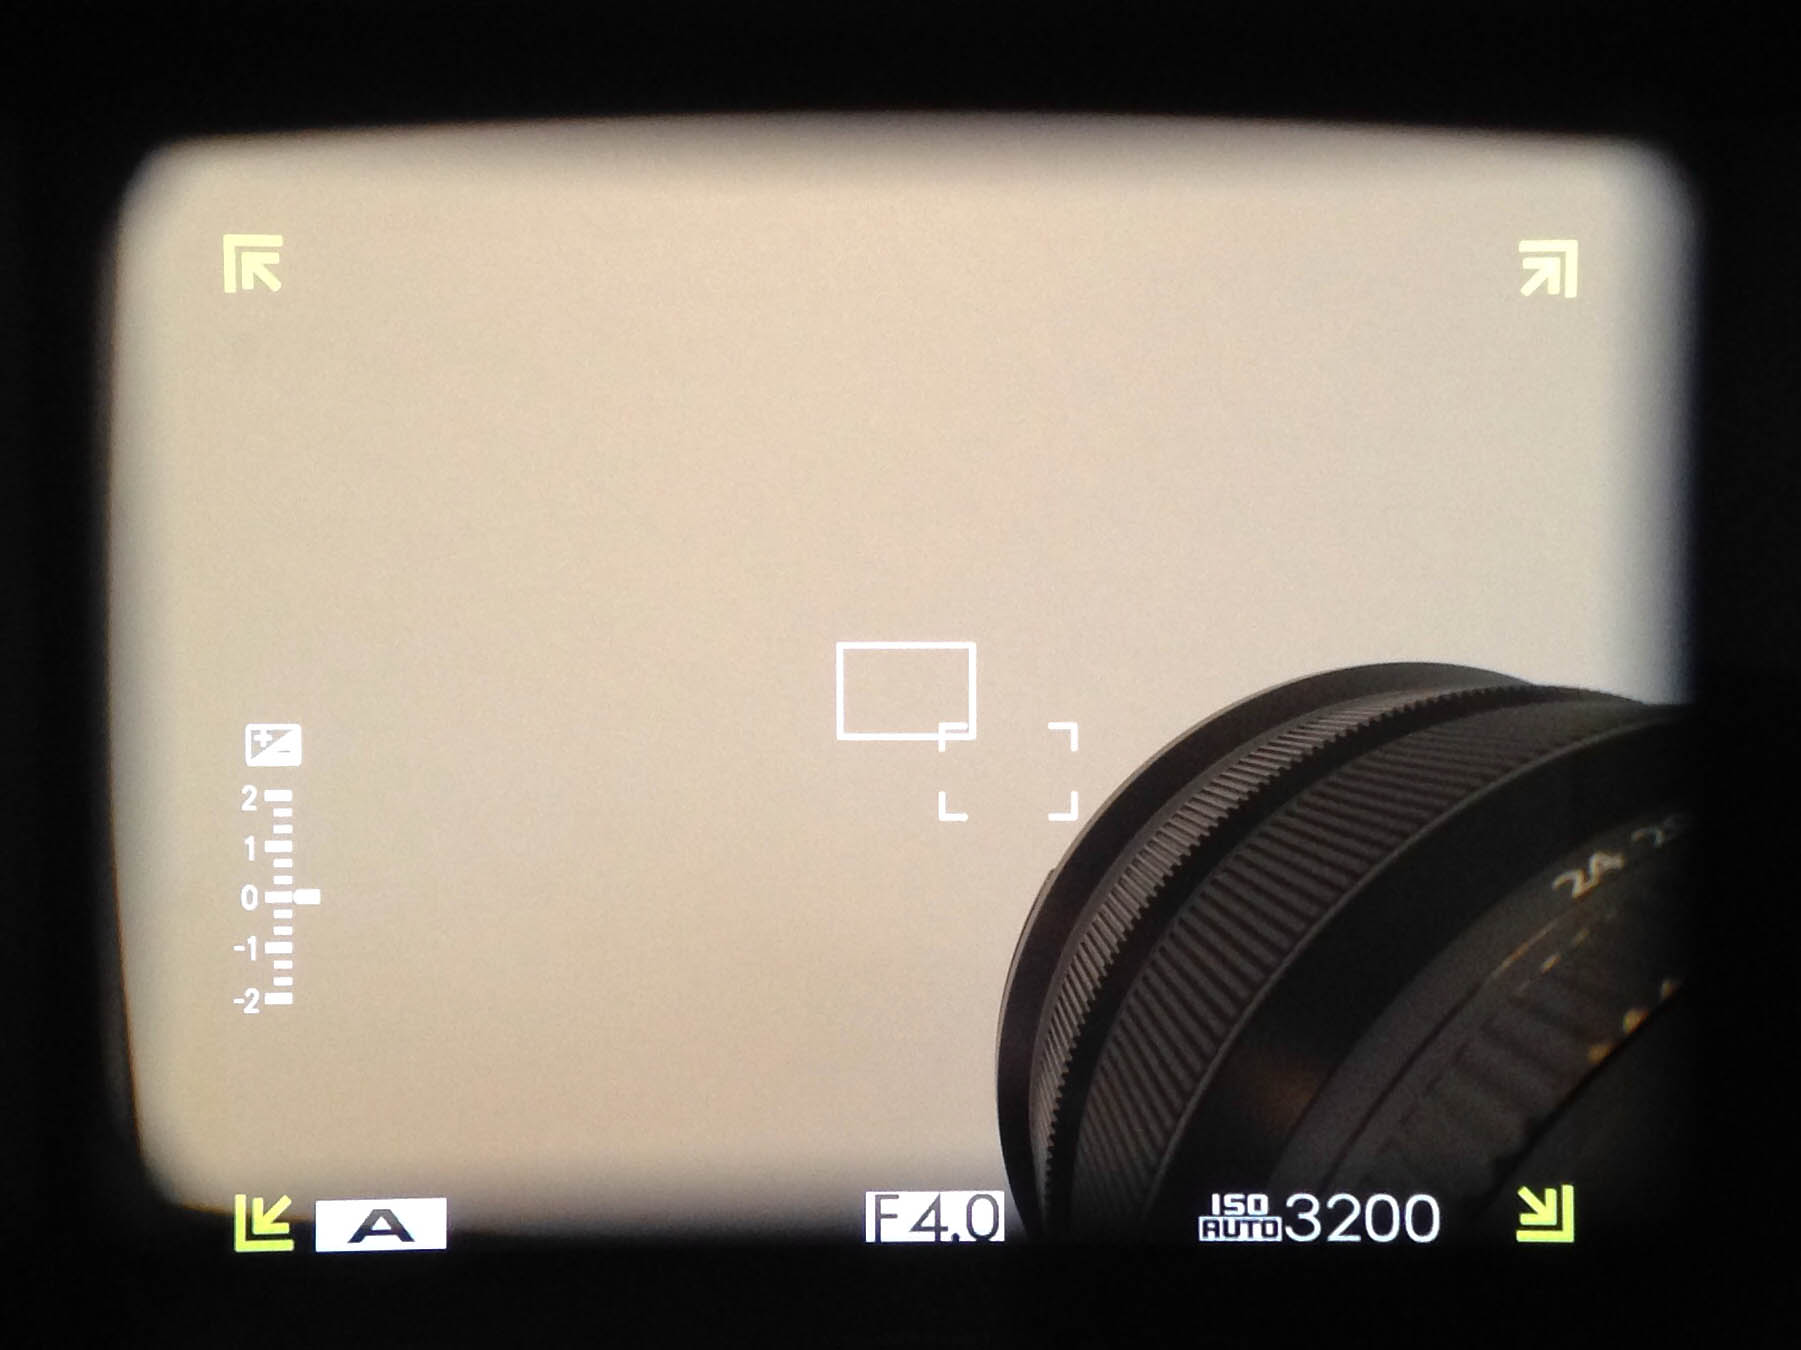 What you see at focal lengths wider than 18mm